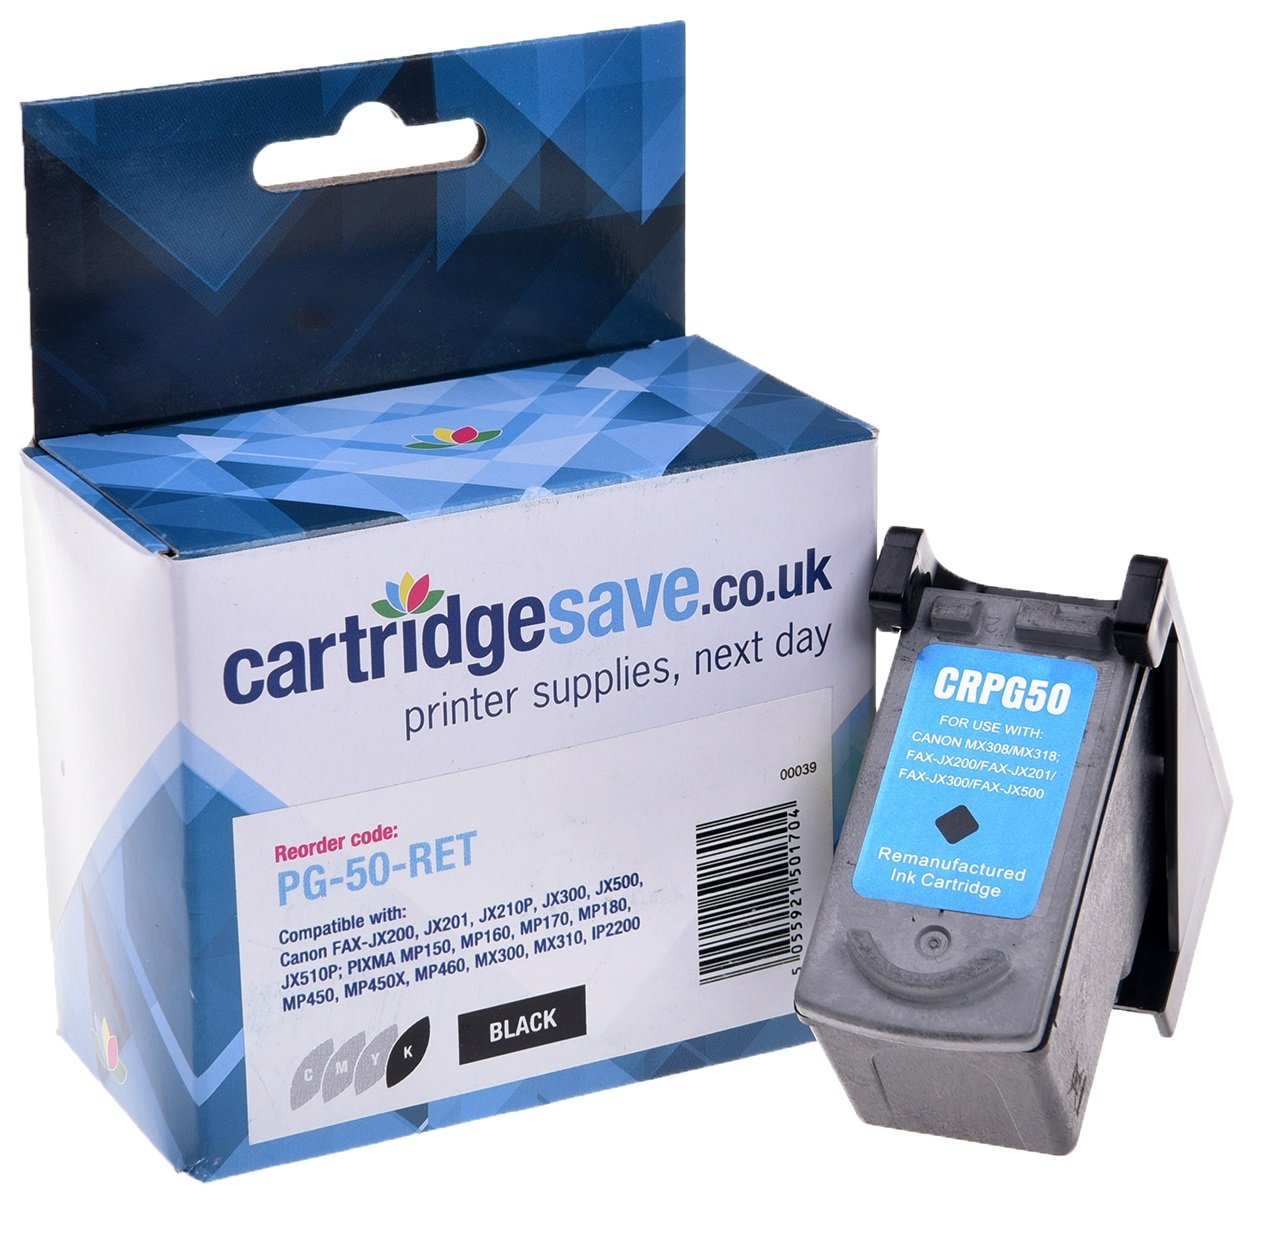 Compatible High Capacity Black Canon PG-50 Ink Cartridge - (Replaces Canon 0616B001 Ink Cartridge)